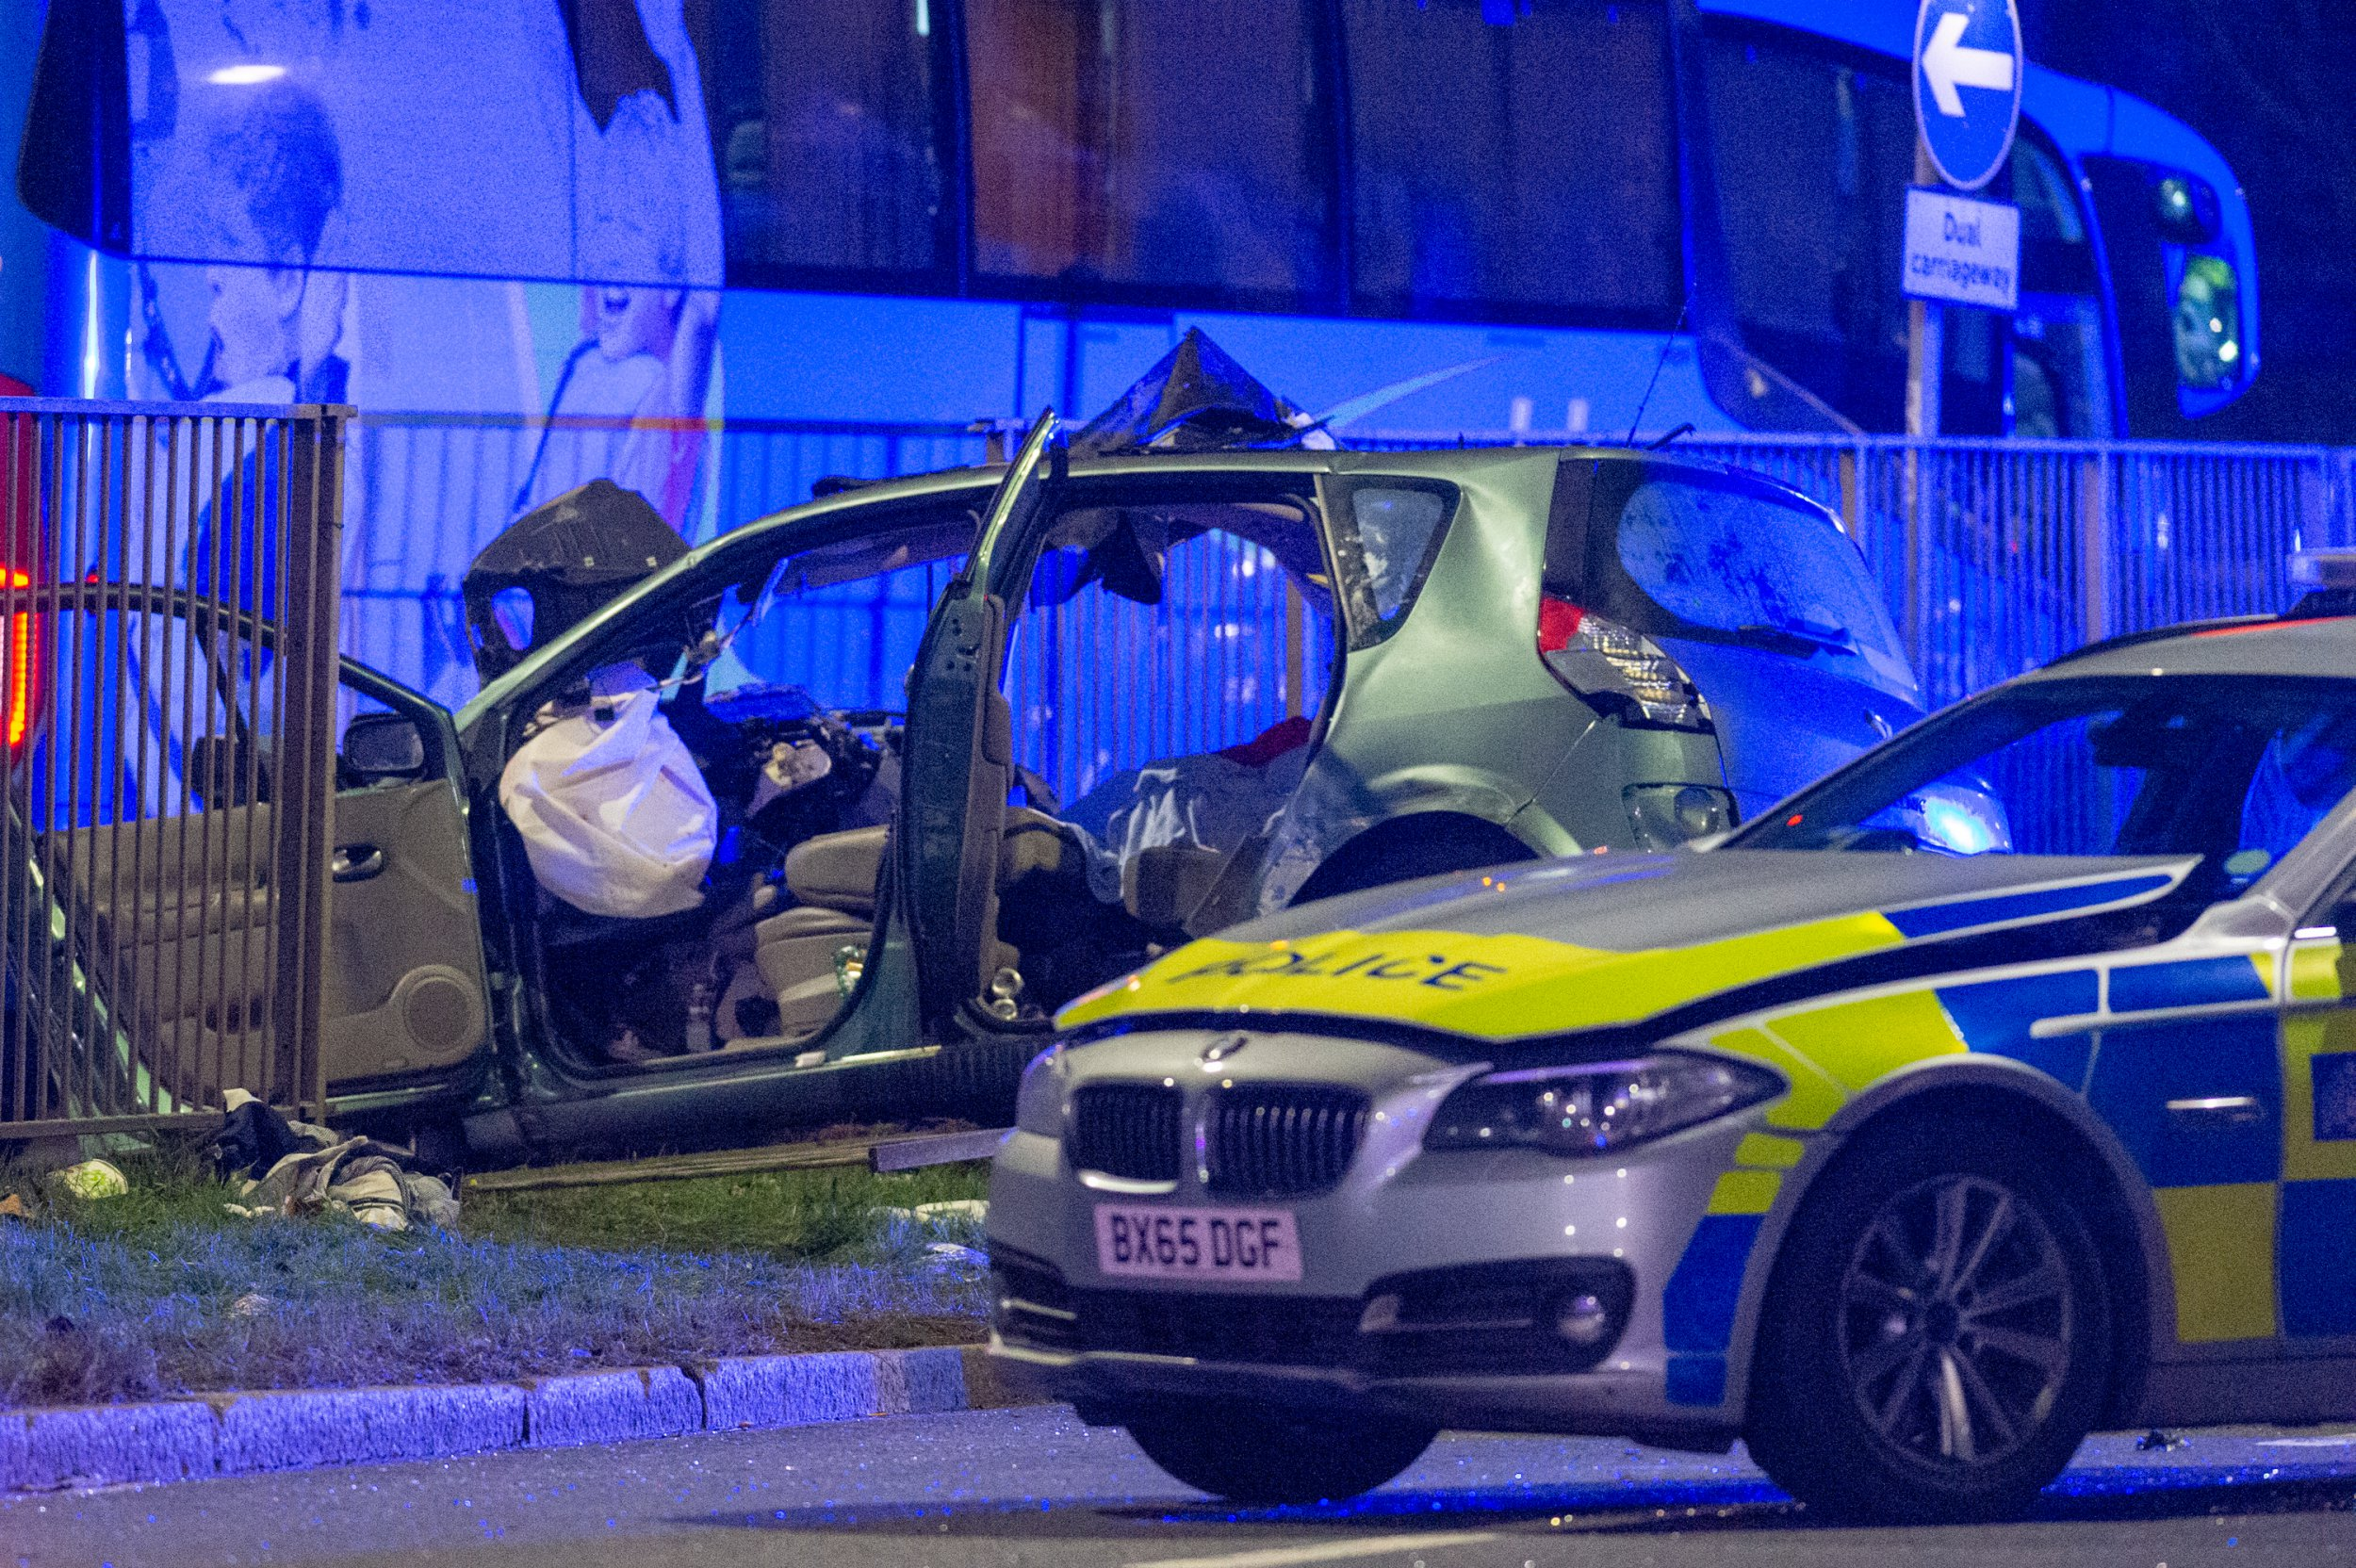 East Acton, United Kingdom. 10 February 2019. A police pursuit has resulted in a fatal road traffic collision involving a police vehicle, car and a coach.. Credit: Peter Manning